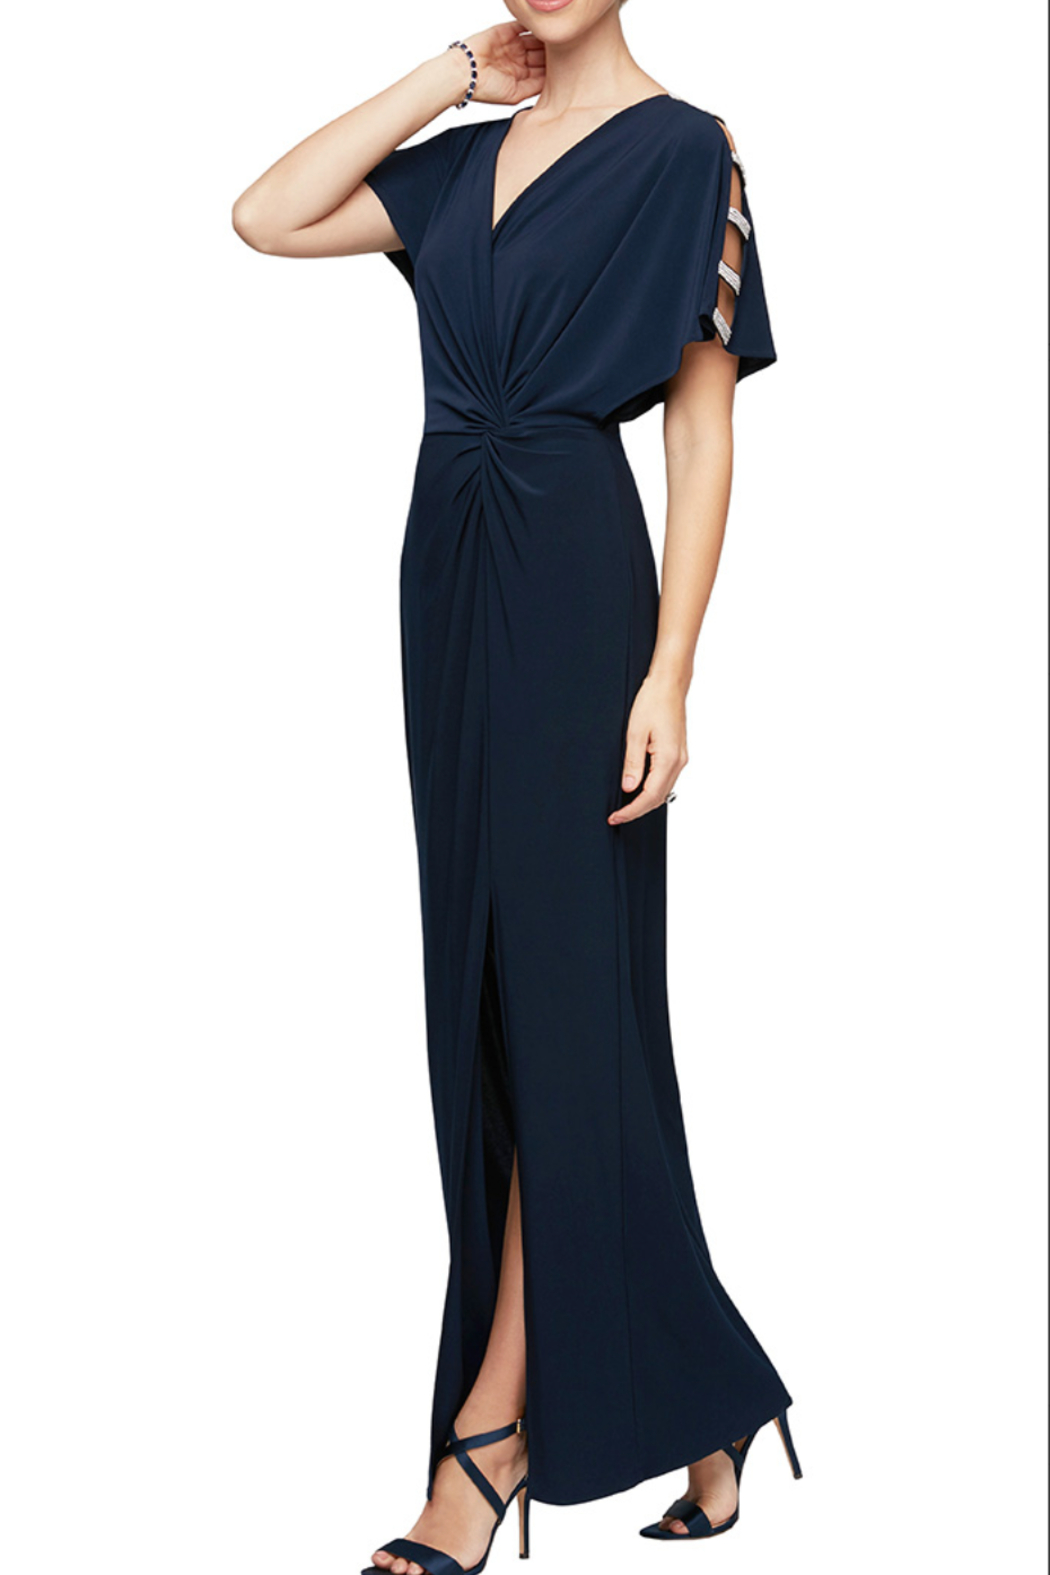 Alex Evenings 81351544 - LONG KNOT FRONT DRESS - Front Cropped Image